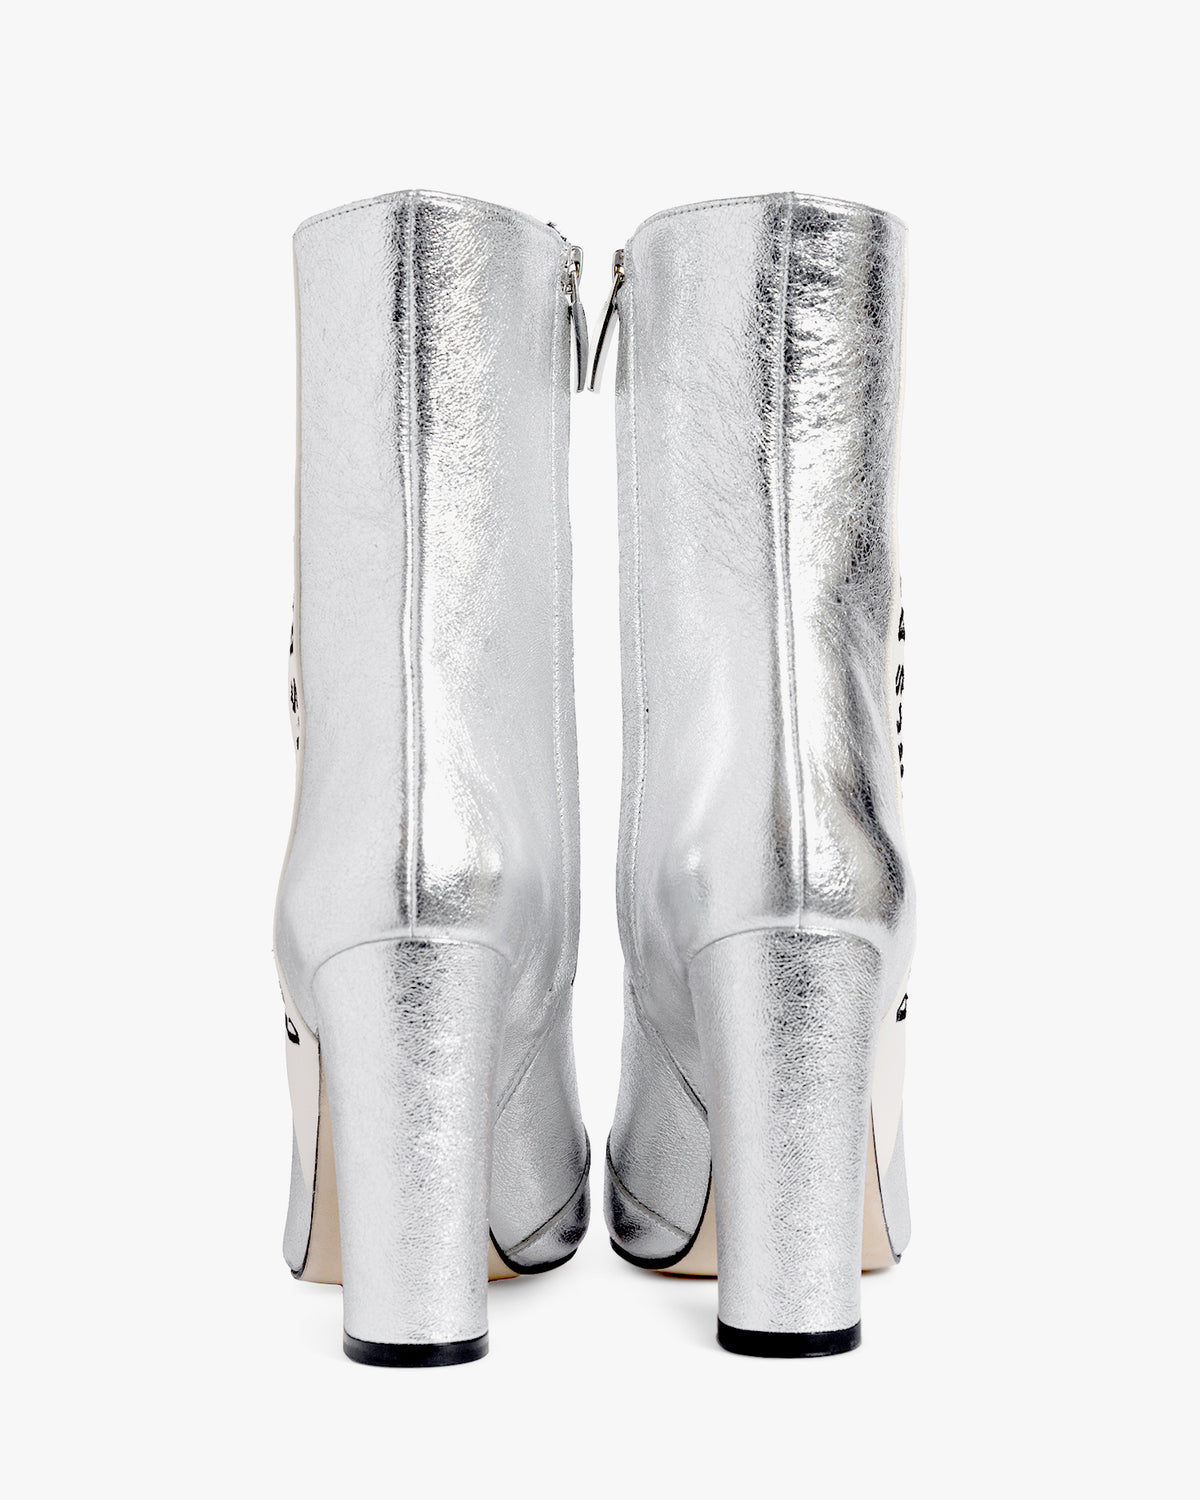 Havva Mustafa Cool Girls Don't Sleep boot in silver